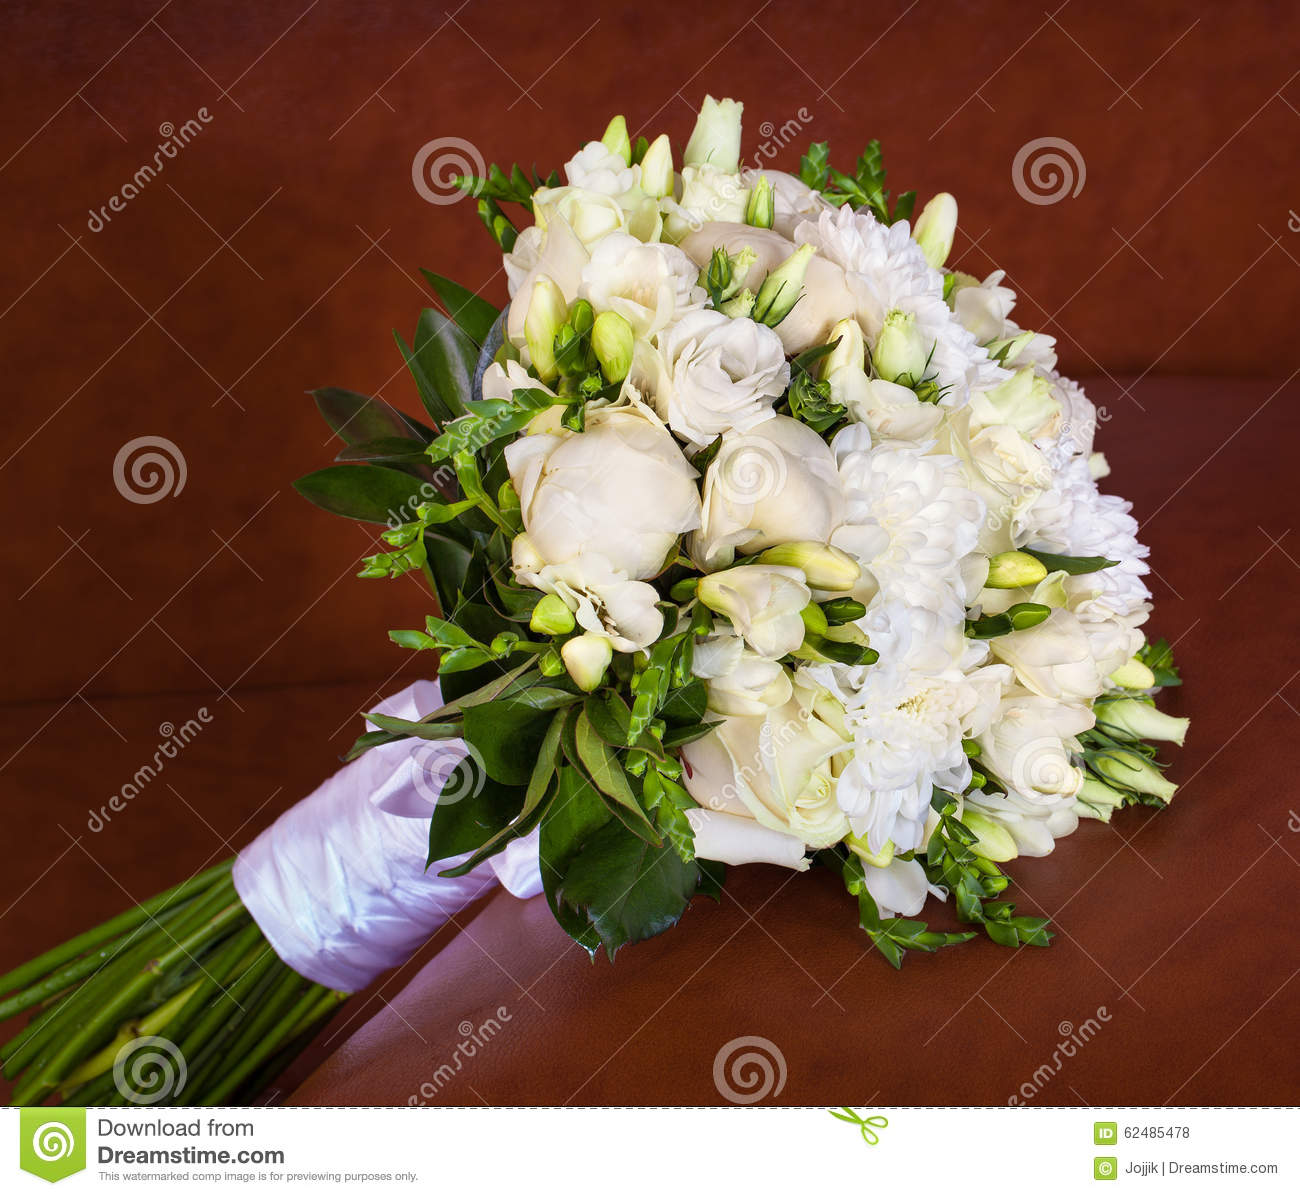 Bright Flower Wedding Bouquet On Brown Leather Sofa Stock Photo